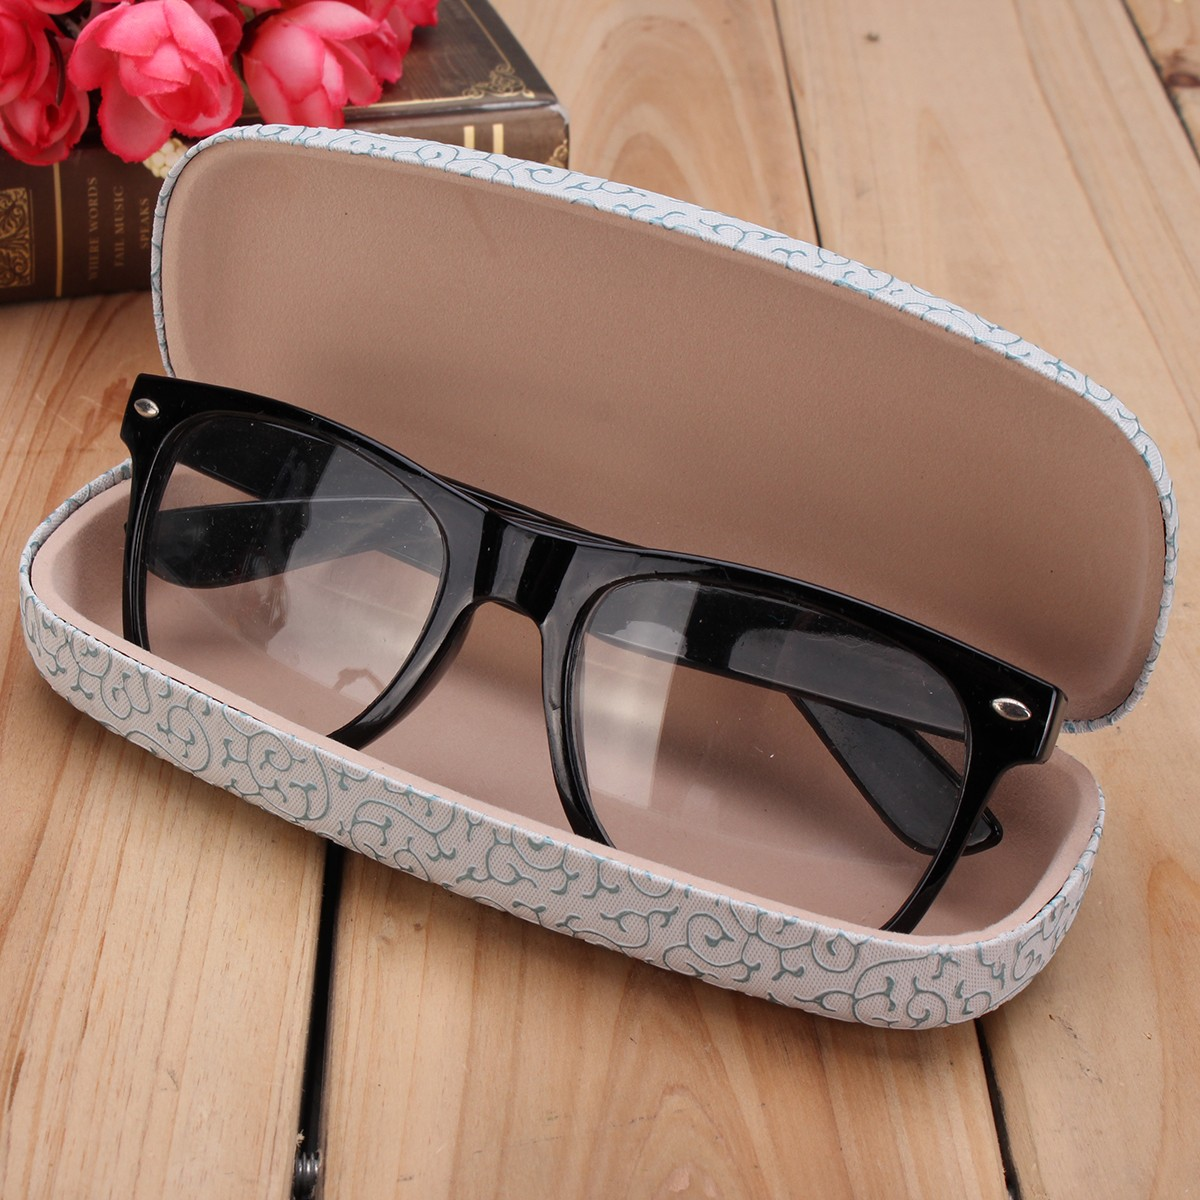 Vintage Hard Sunglass Glasses Box Lace Pattern Reading Glasses Storage Spectacle Glasses Case